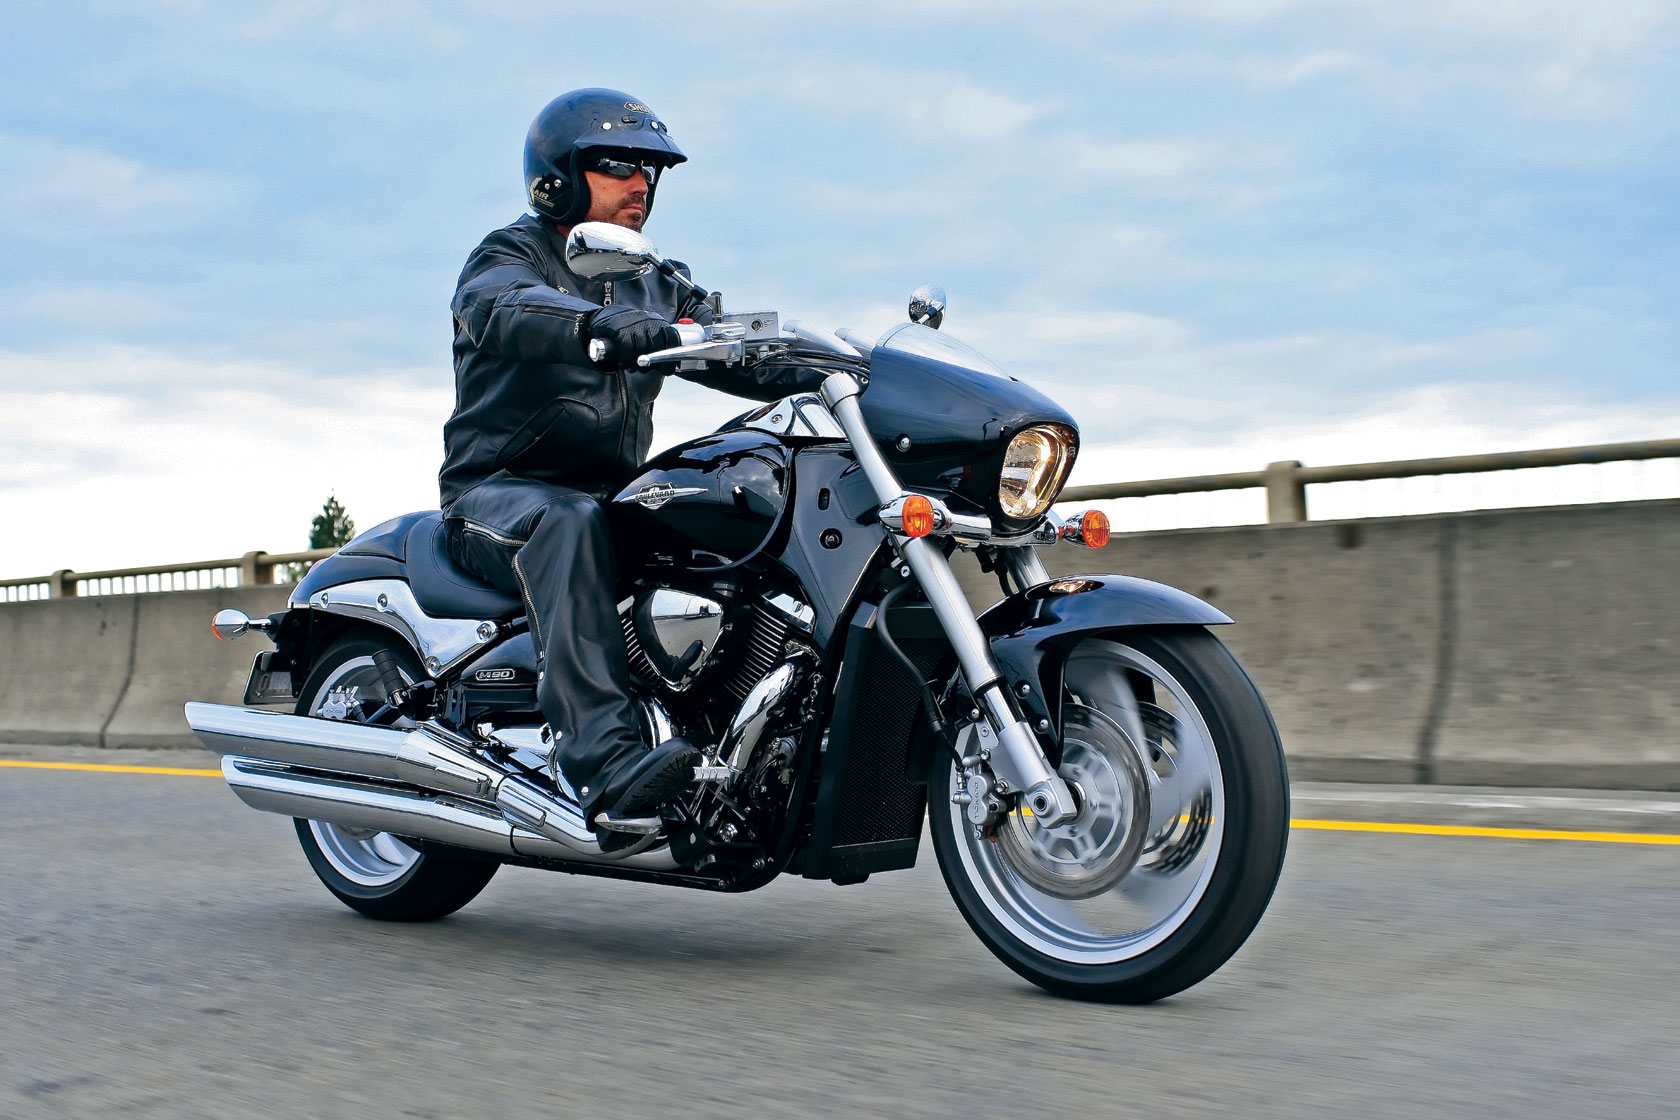 2009 Suzuki Boulevard M109R Test Ride